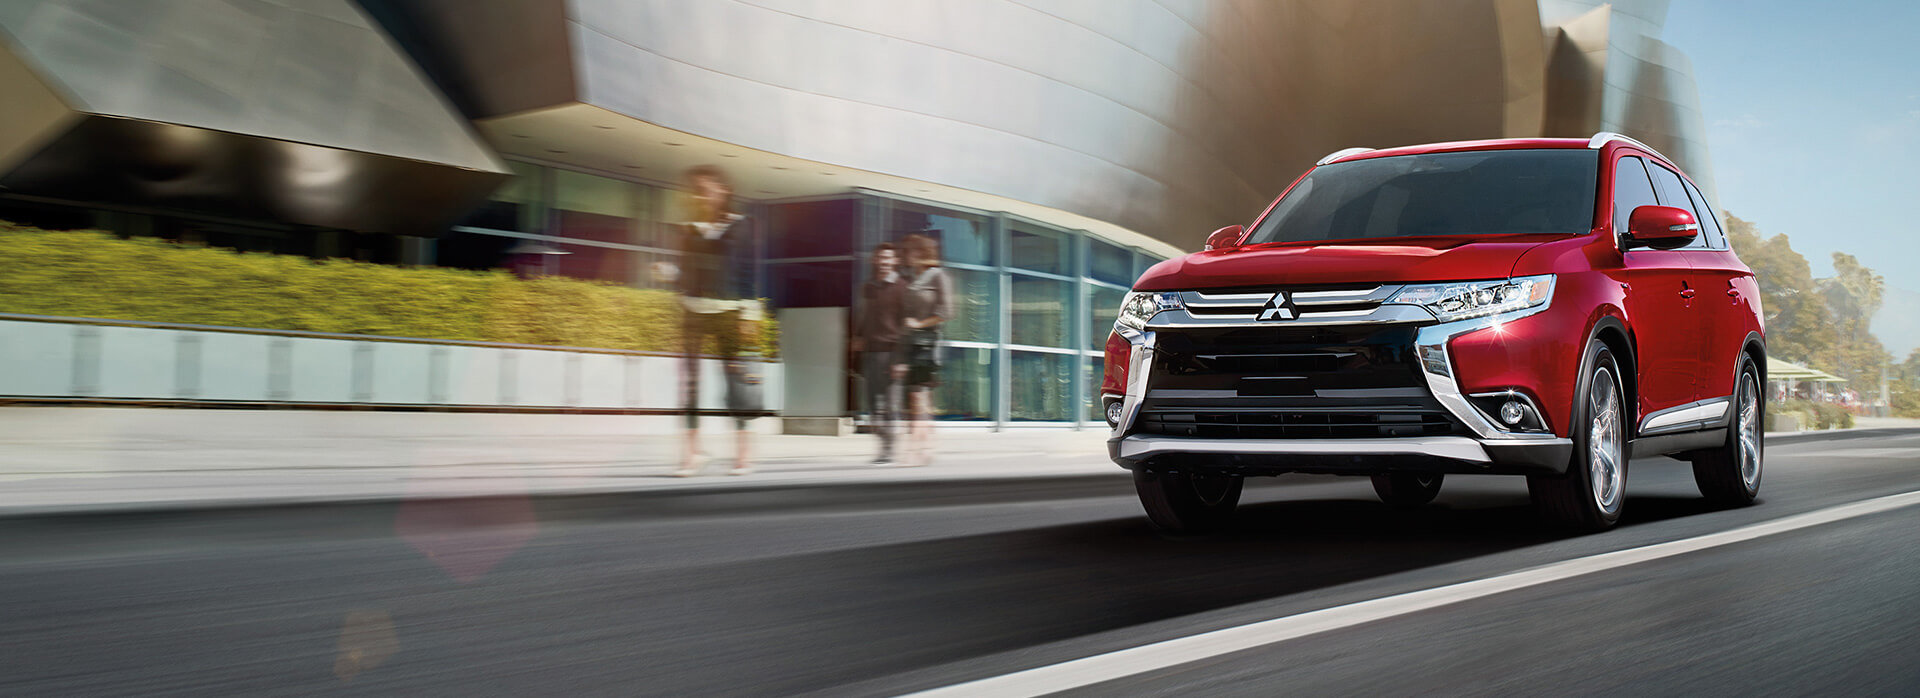 West Loop Mitsubishi San Antonio Tx >> West Loop Mitsubishi San Antonio Tx Dealer | Autos Post